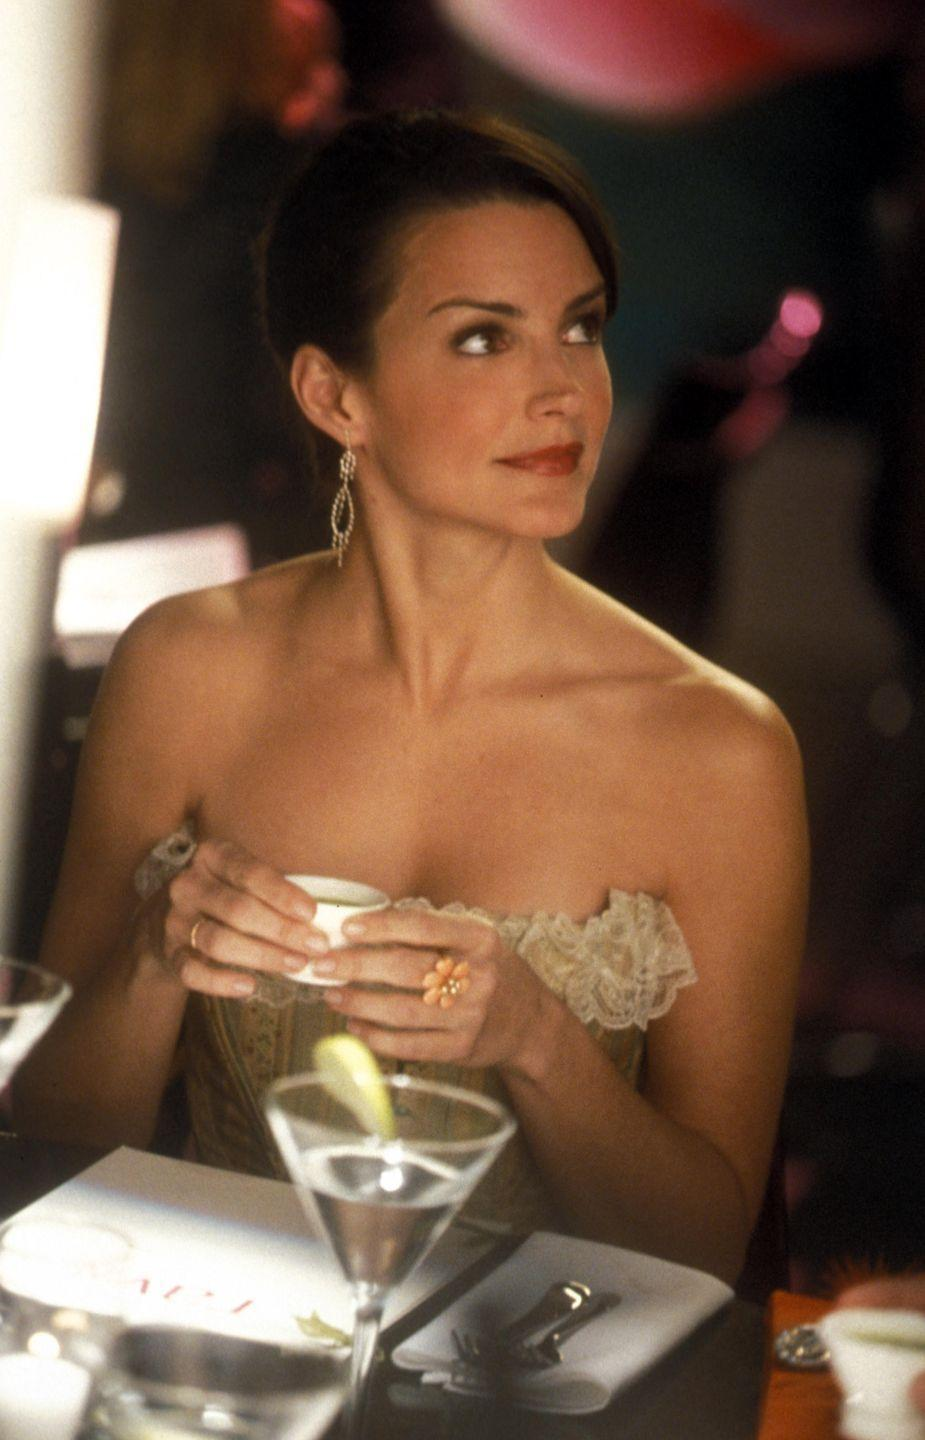 <p>Charlotte York's classic pearls, diamond earrings and floral accessories were all central to her quintessential, Audrey Hepburn-esque wardrobe. </p>